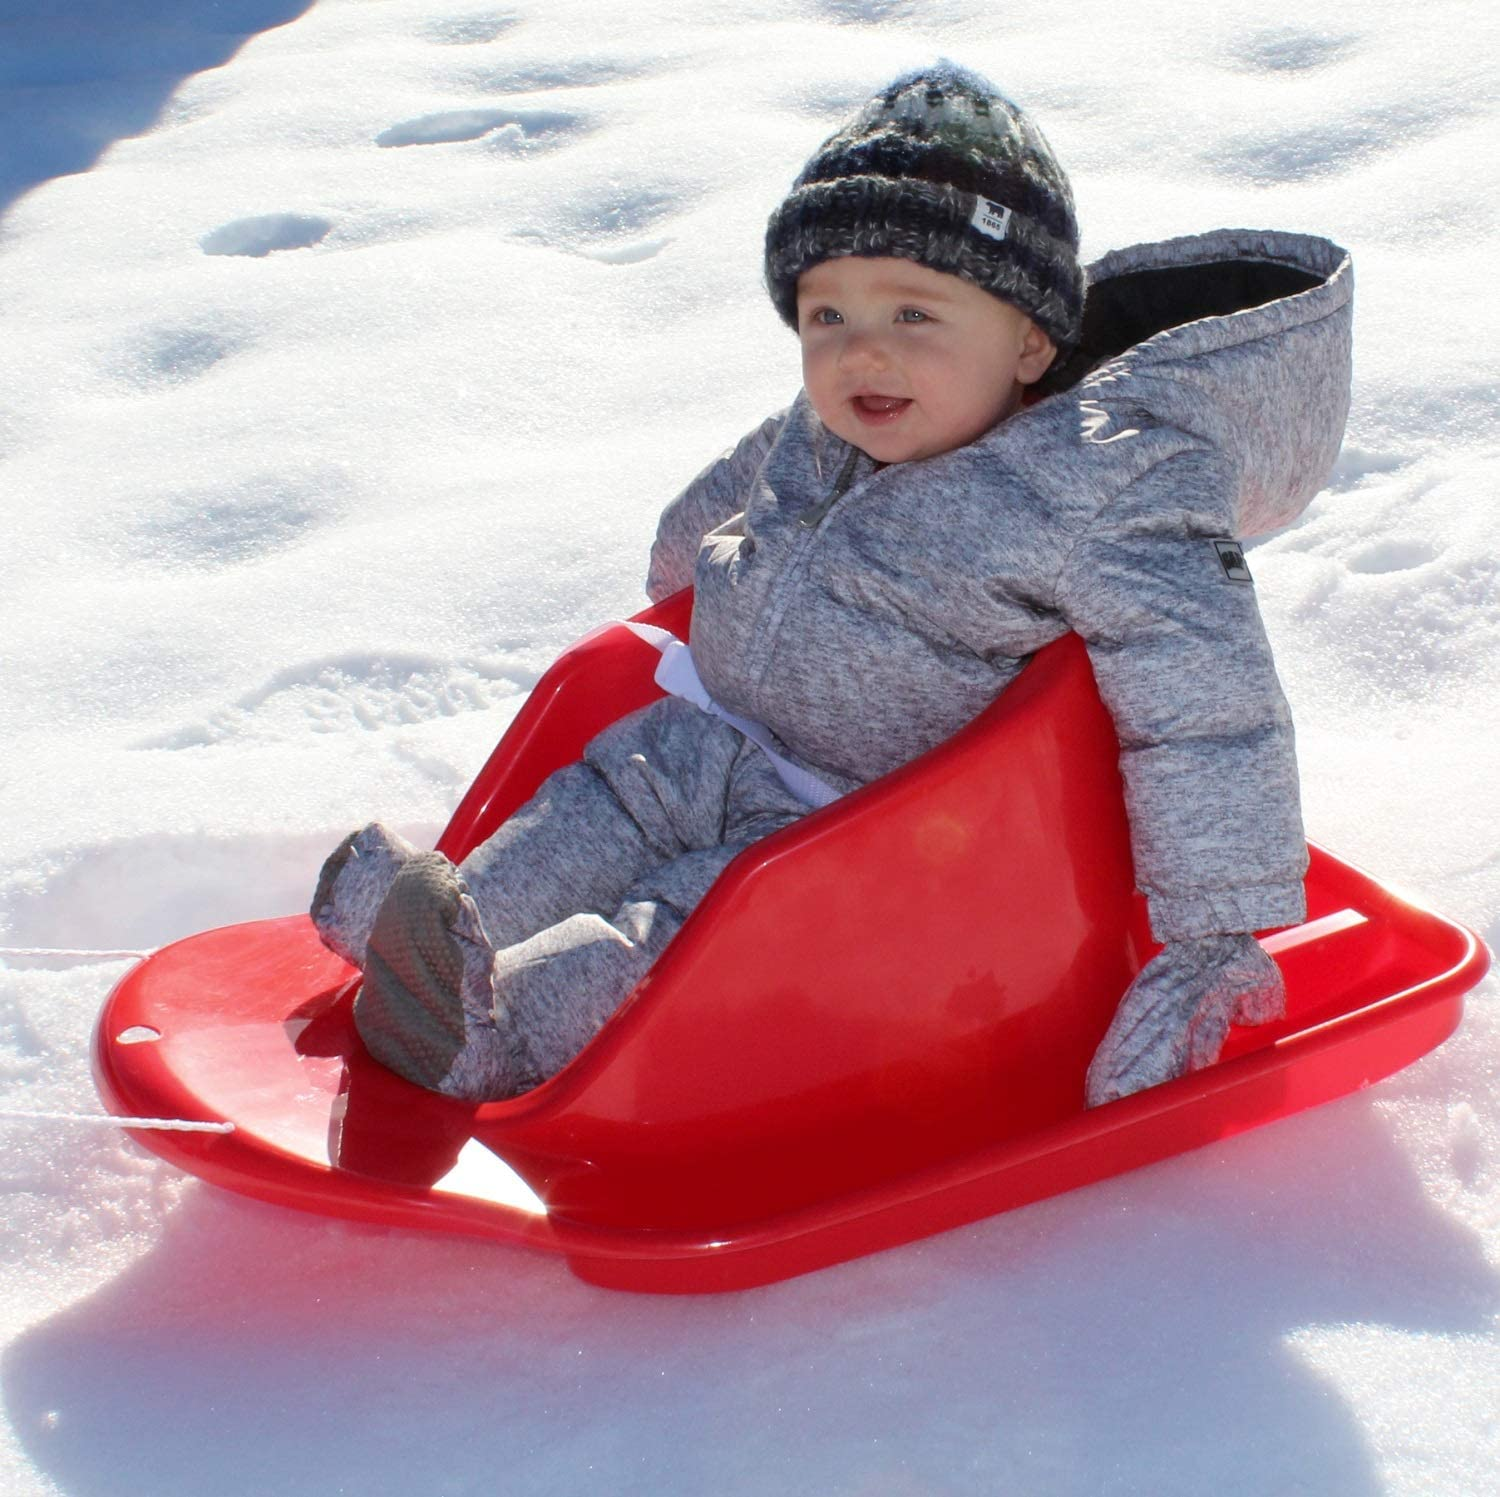 Top 11 Best Sleds For Toddlers For Winter Vacation 2020 1